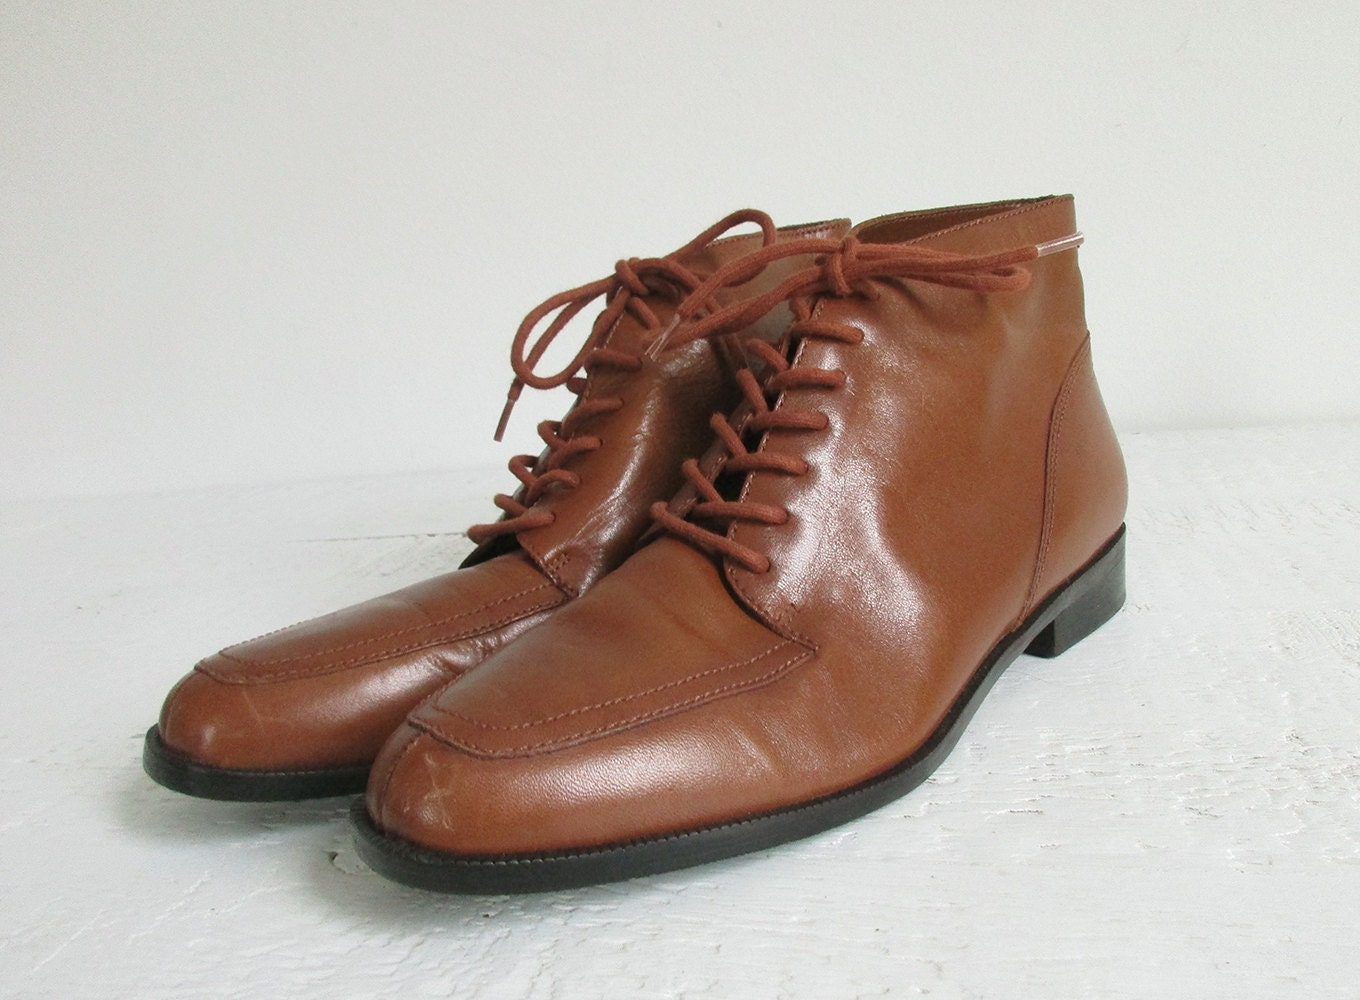 vintage cognac brown leather ankle boots, 90s low heel lace up ...